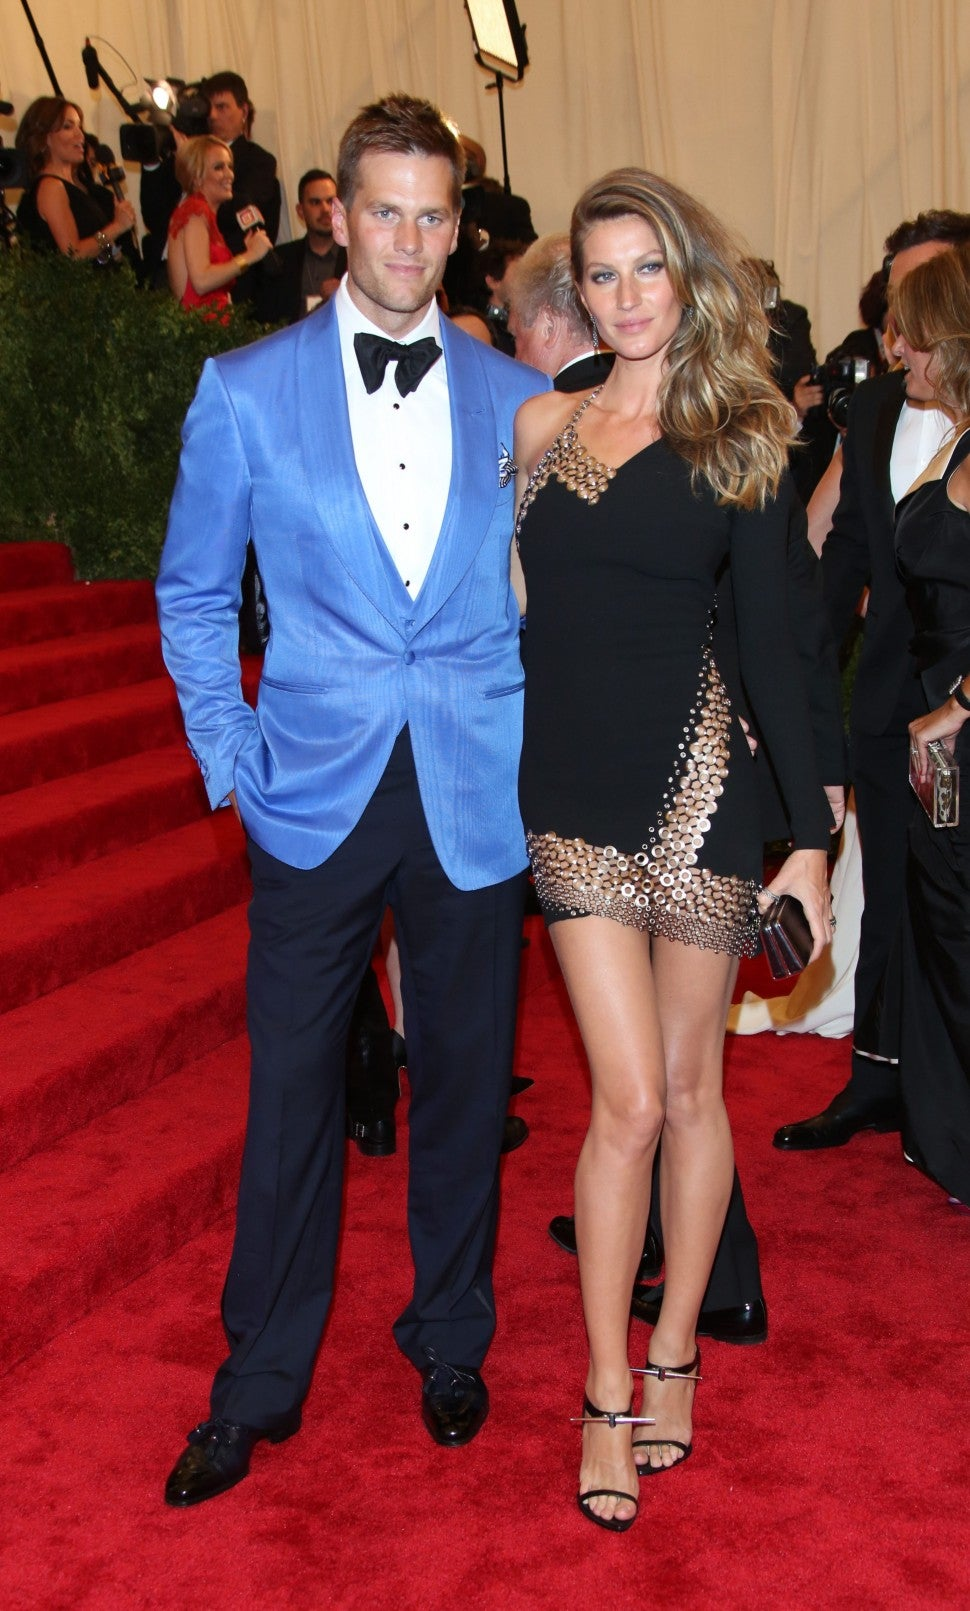 Gisele Bundchen and Tom Brady arrive at the Costume Institute Gala for the